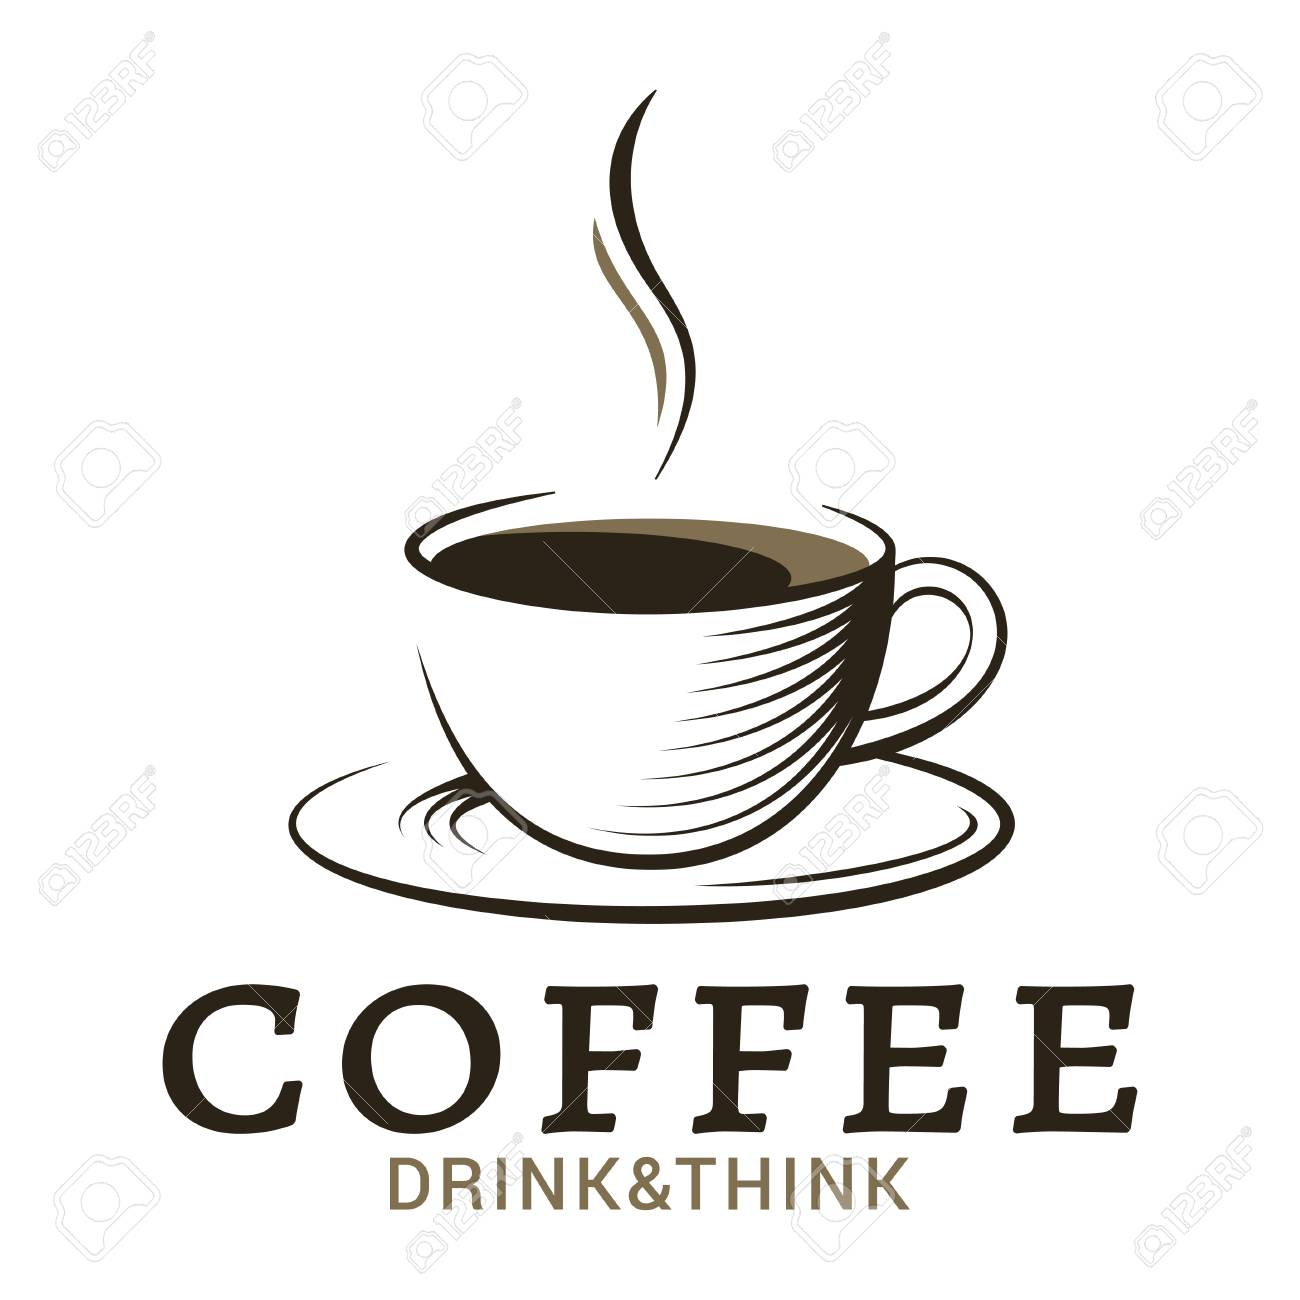 coffee cup vintage logo on white background - 103035966